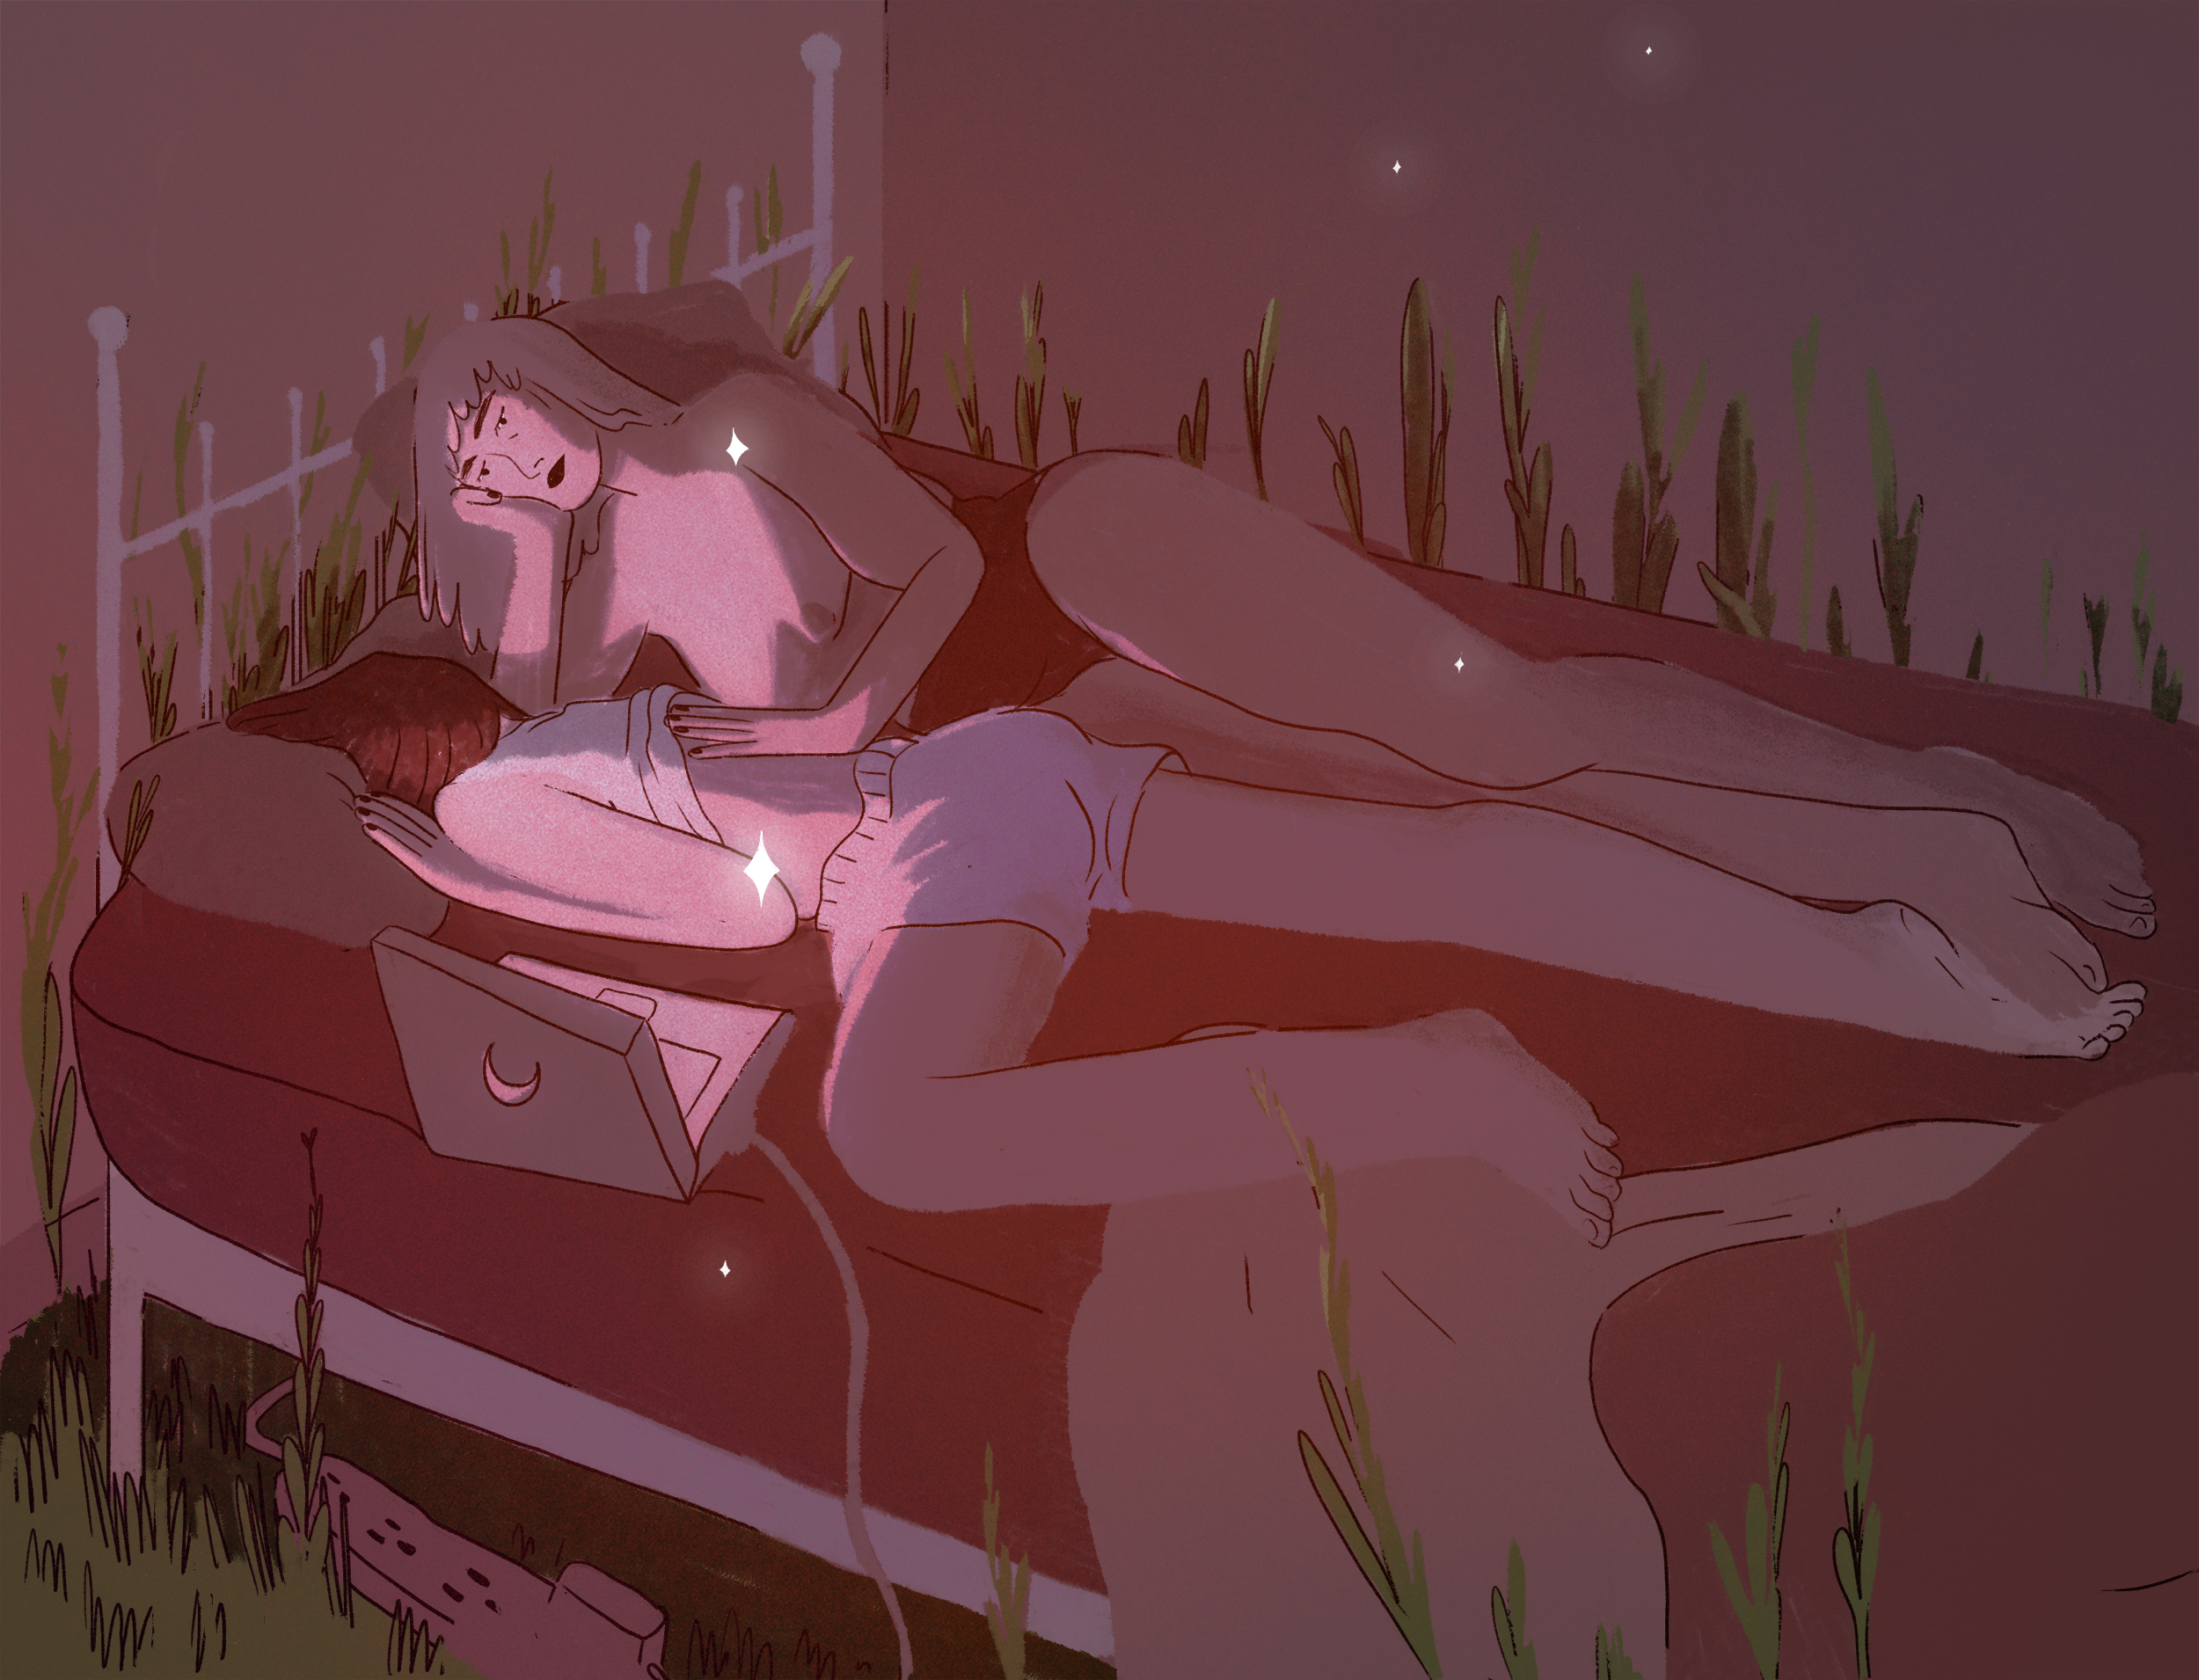 sleepingtogether_v01.jpg